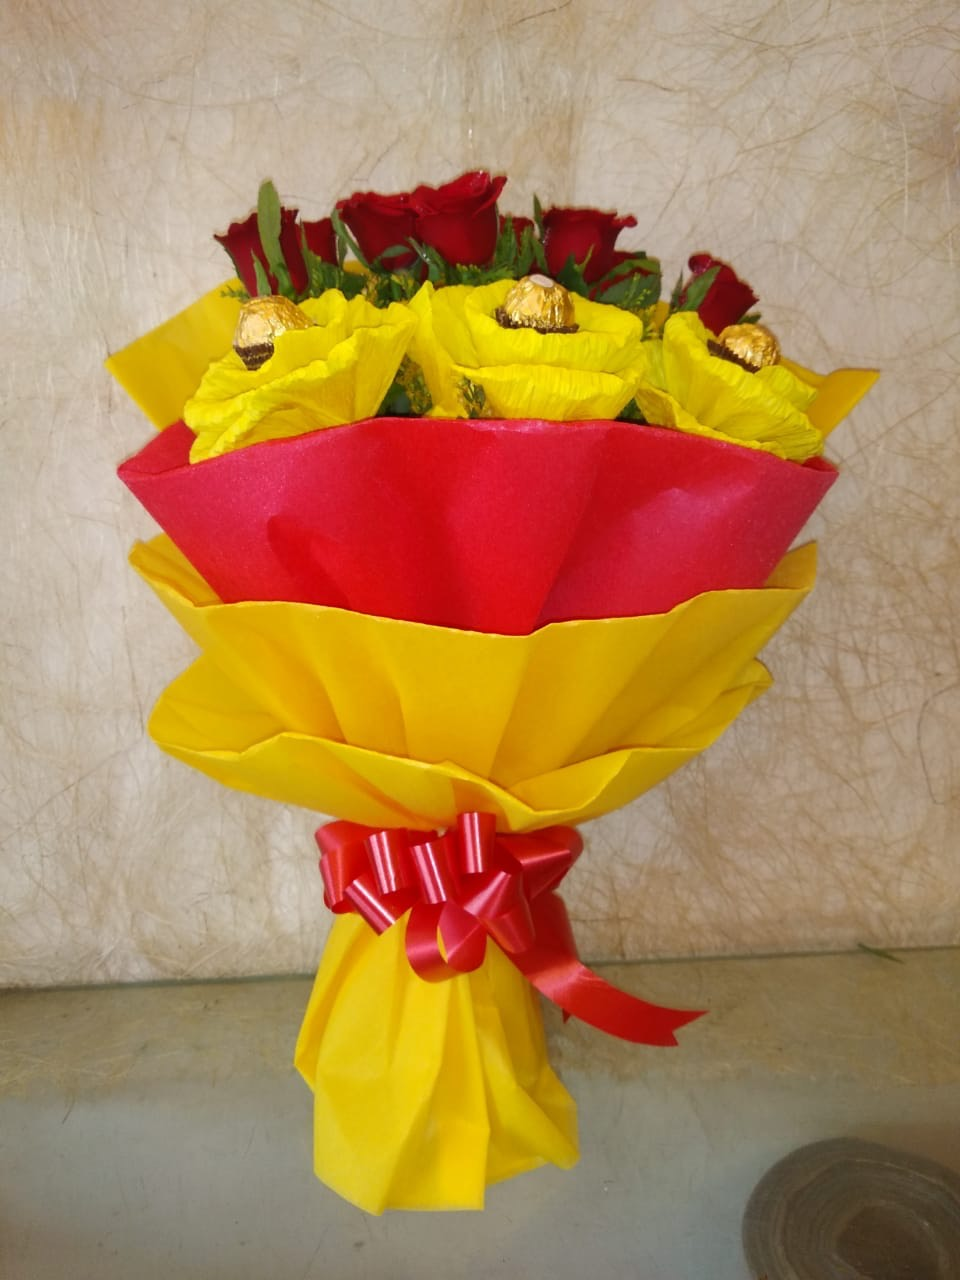 send flower Lodi Colony DelhiRed Roses Ferrero Rocher Bunch